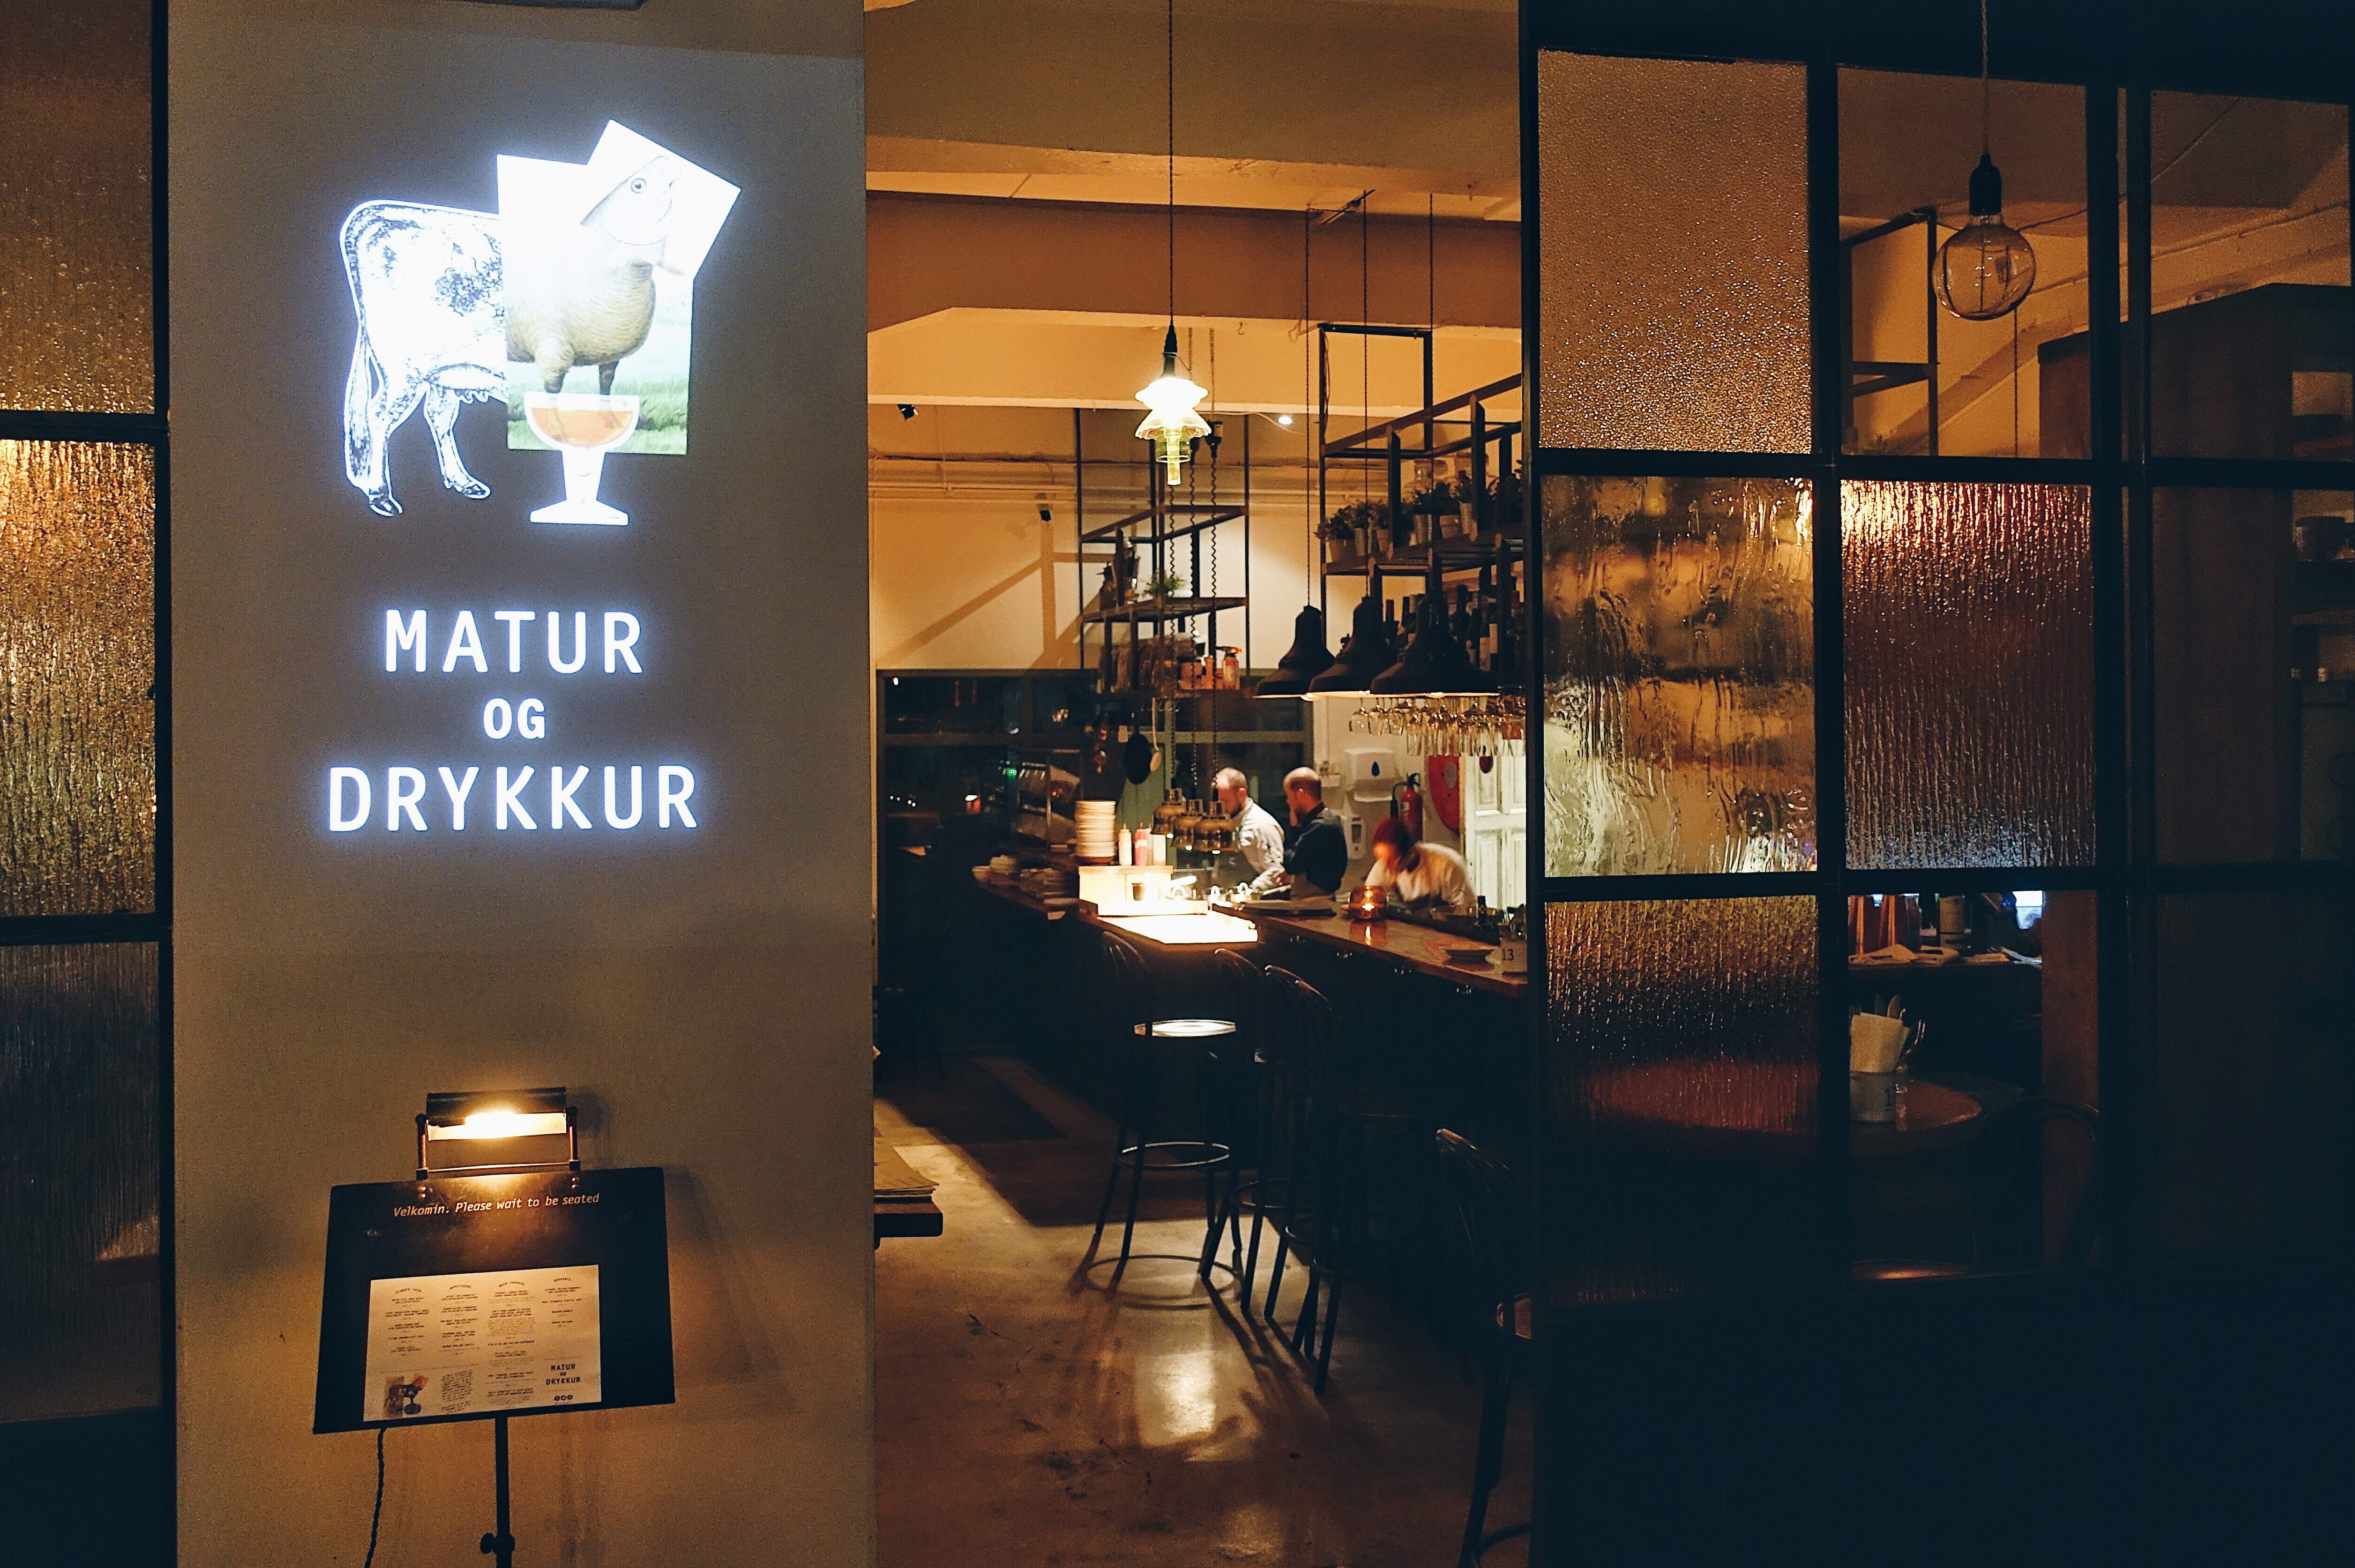 Matur og Drykkur - Traditional Icelandic cuisine with a modern twist